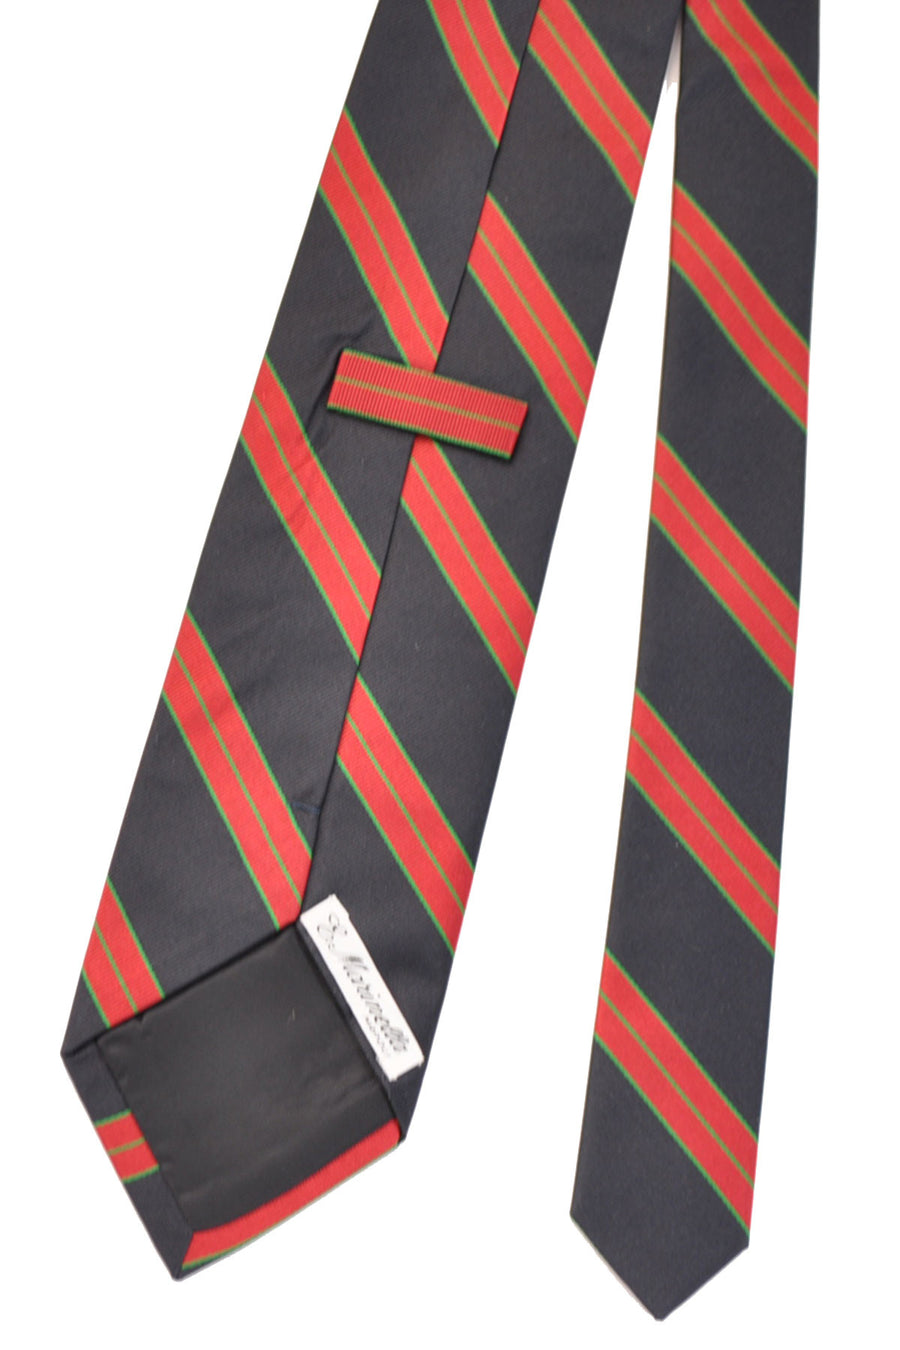 E. Marinella Tie Navy Red Green Stripes